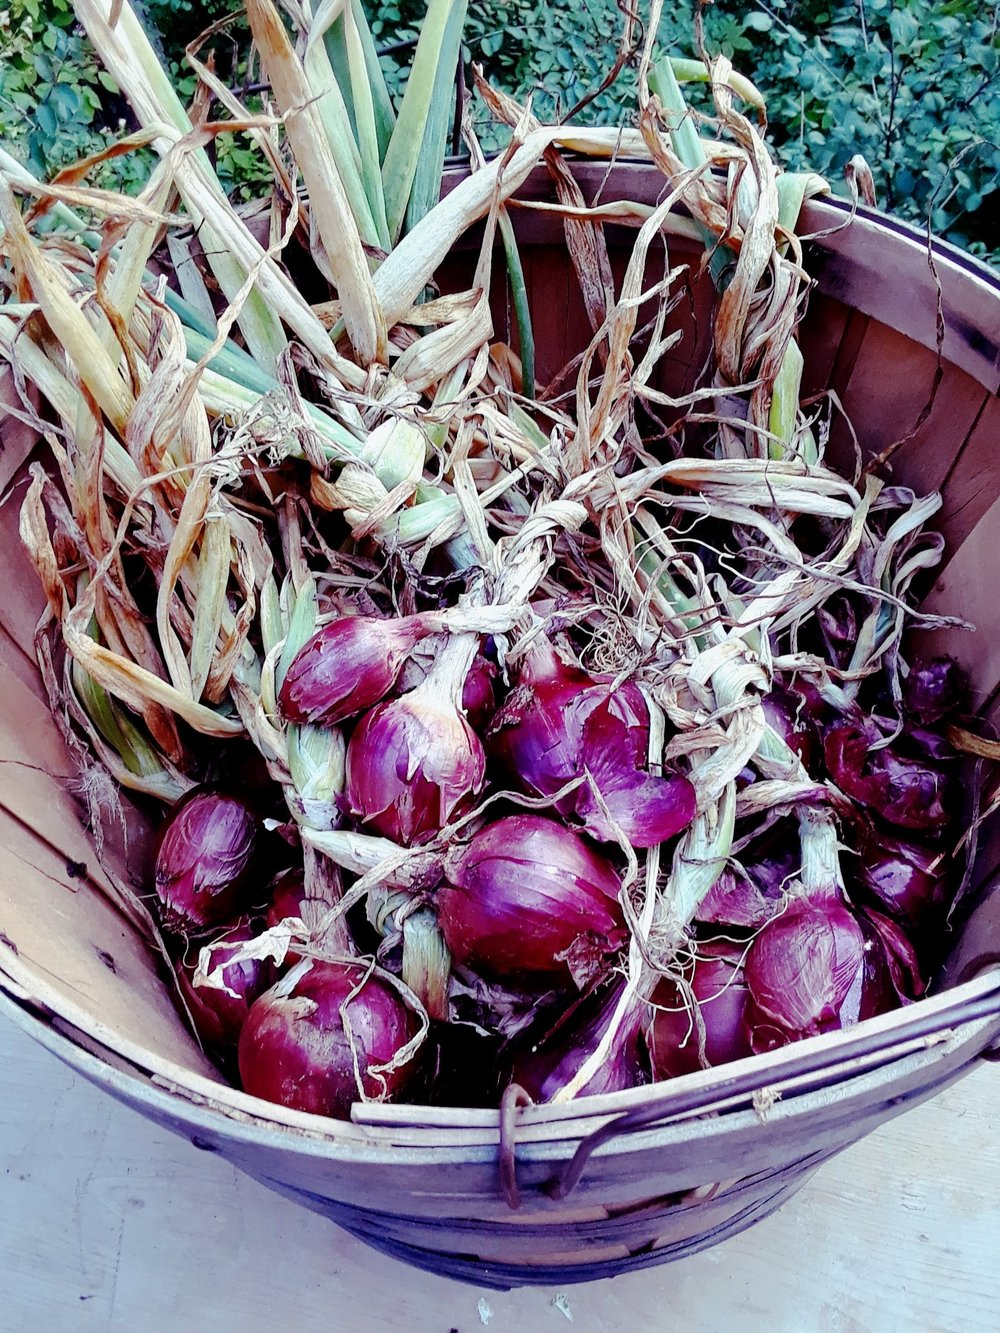 A harvest of red storage onions, cured and ready to be trimmed and put away for winter use.